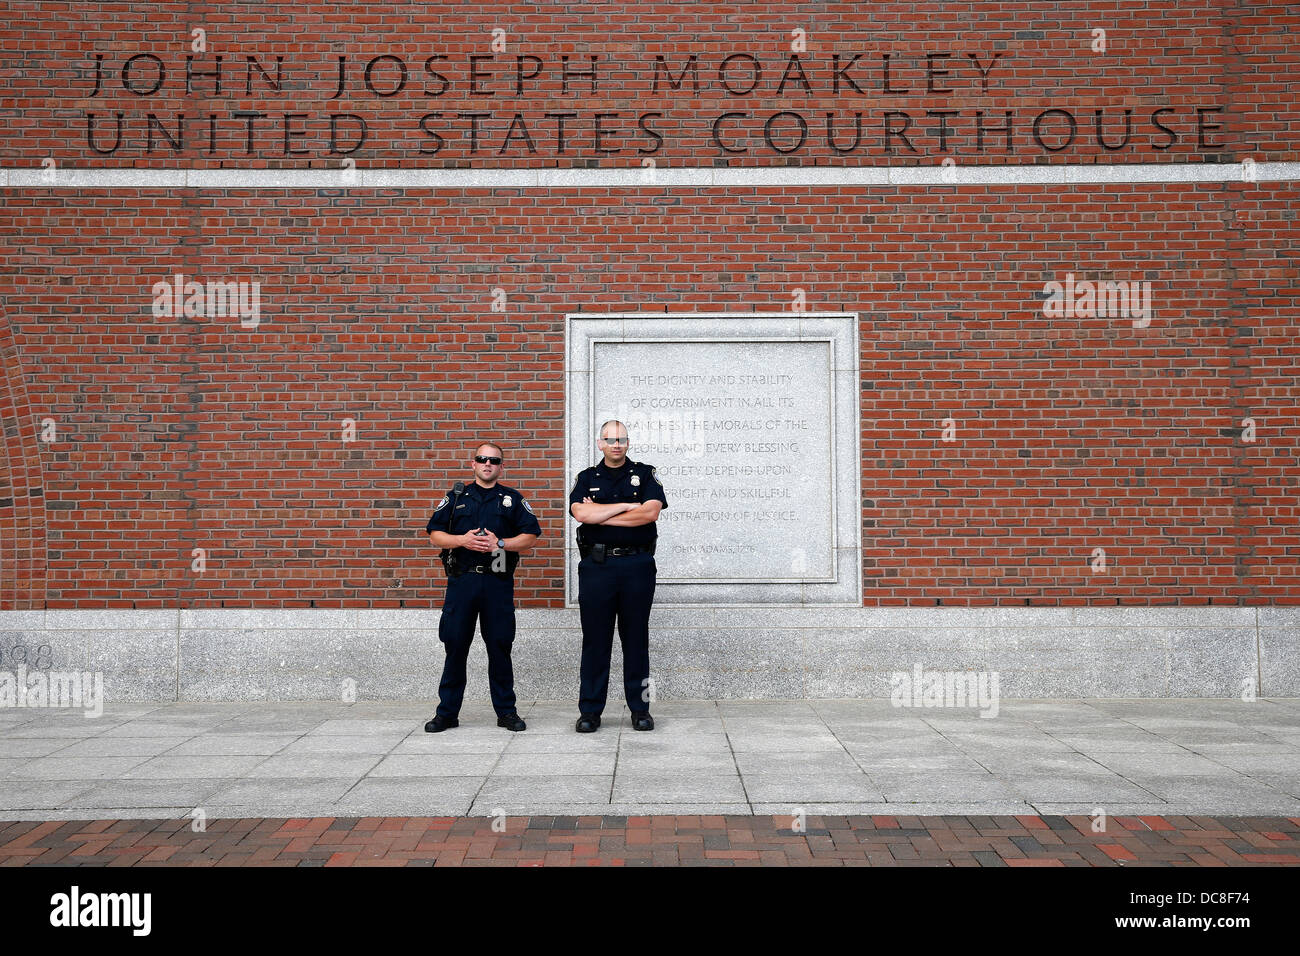 Department of Homeland Security officers outside the federal courthouse in Boston, Massachusetts - Stock Image